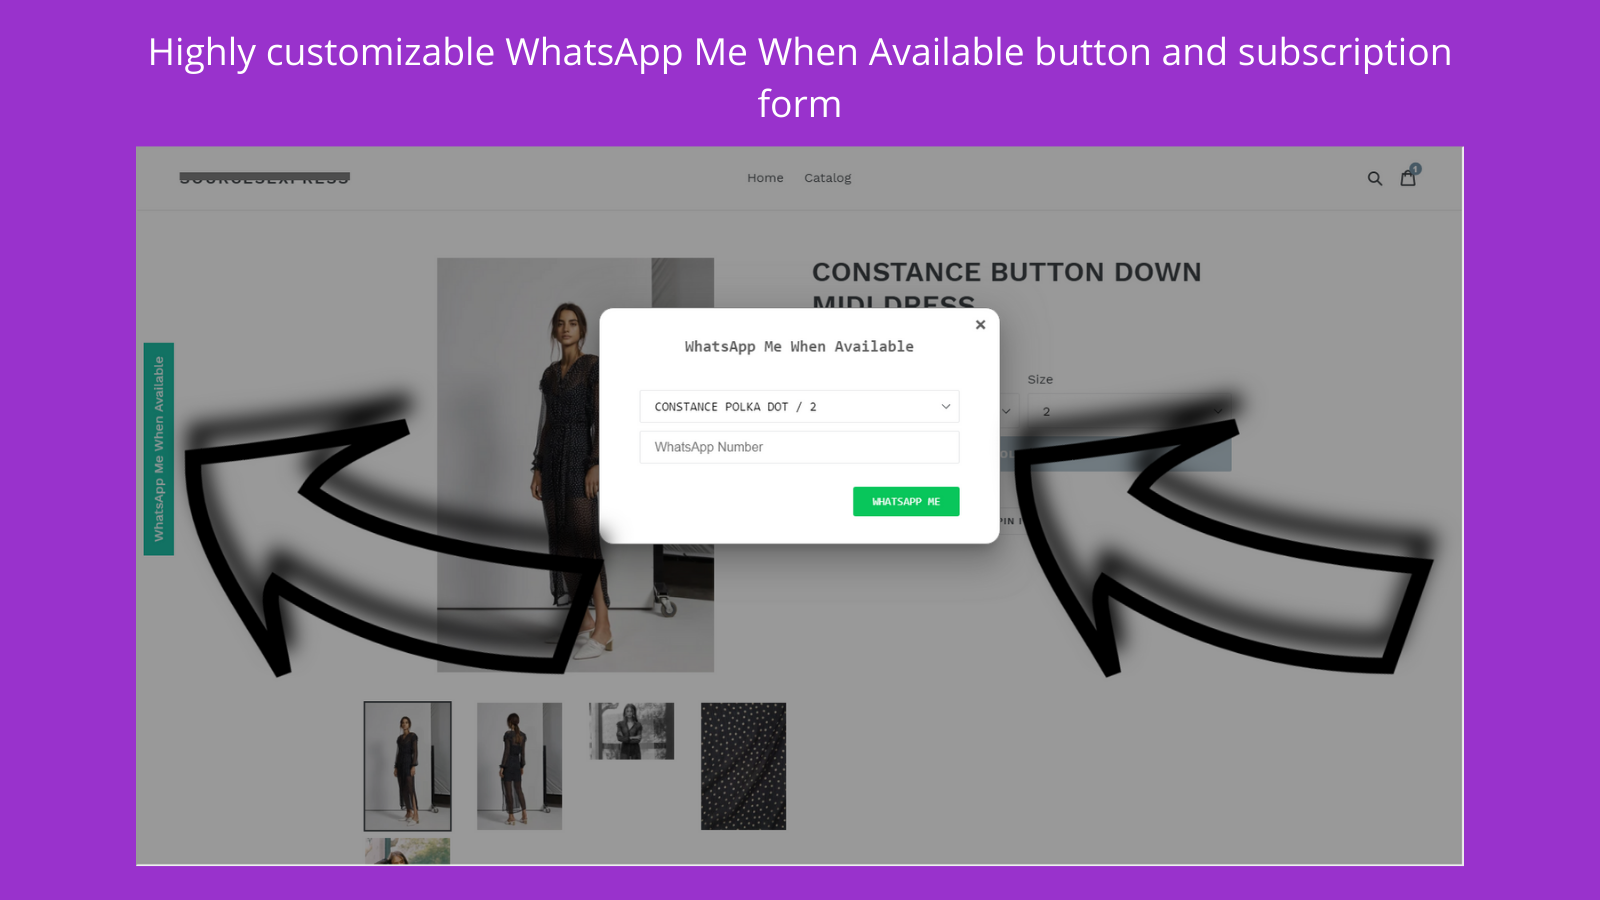 Highly customizable buttons and subscription form